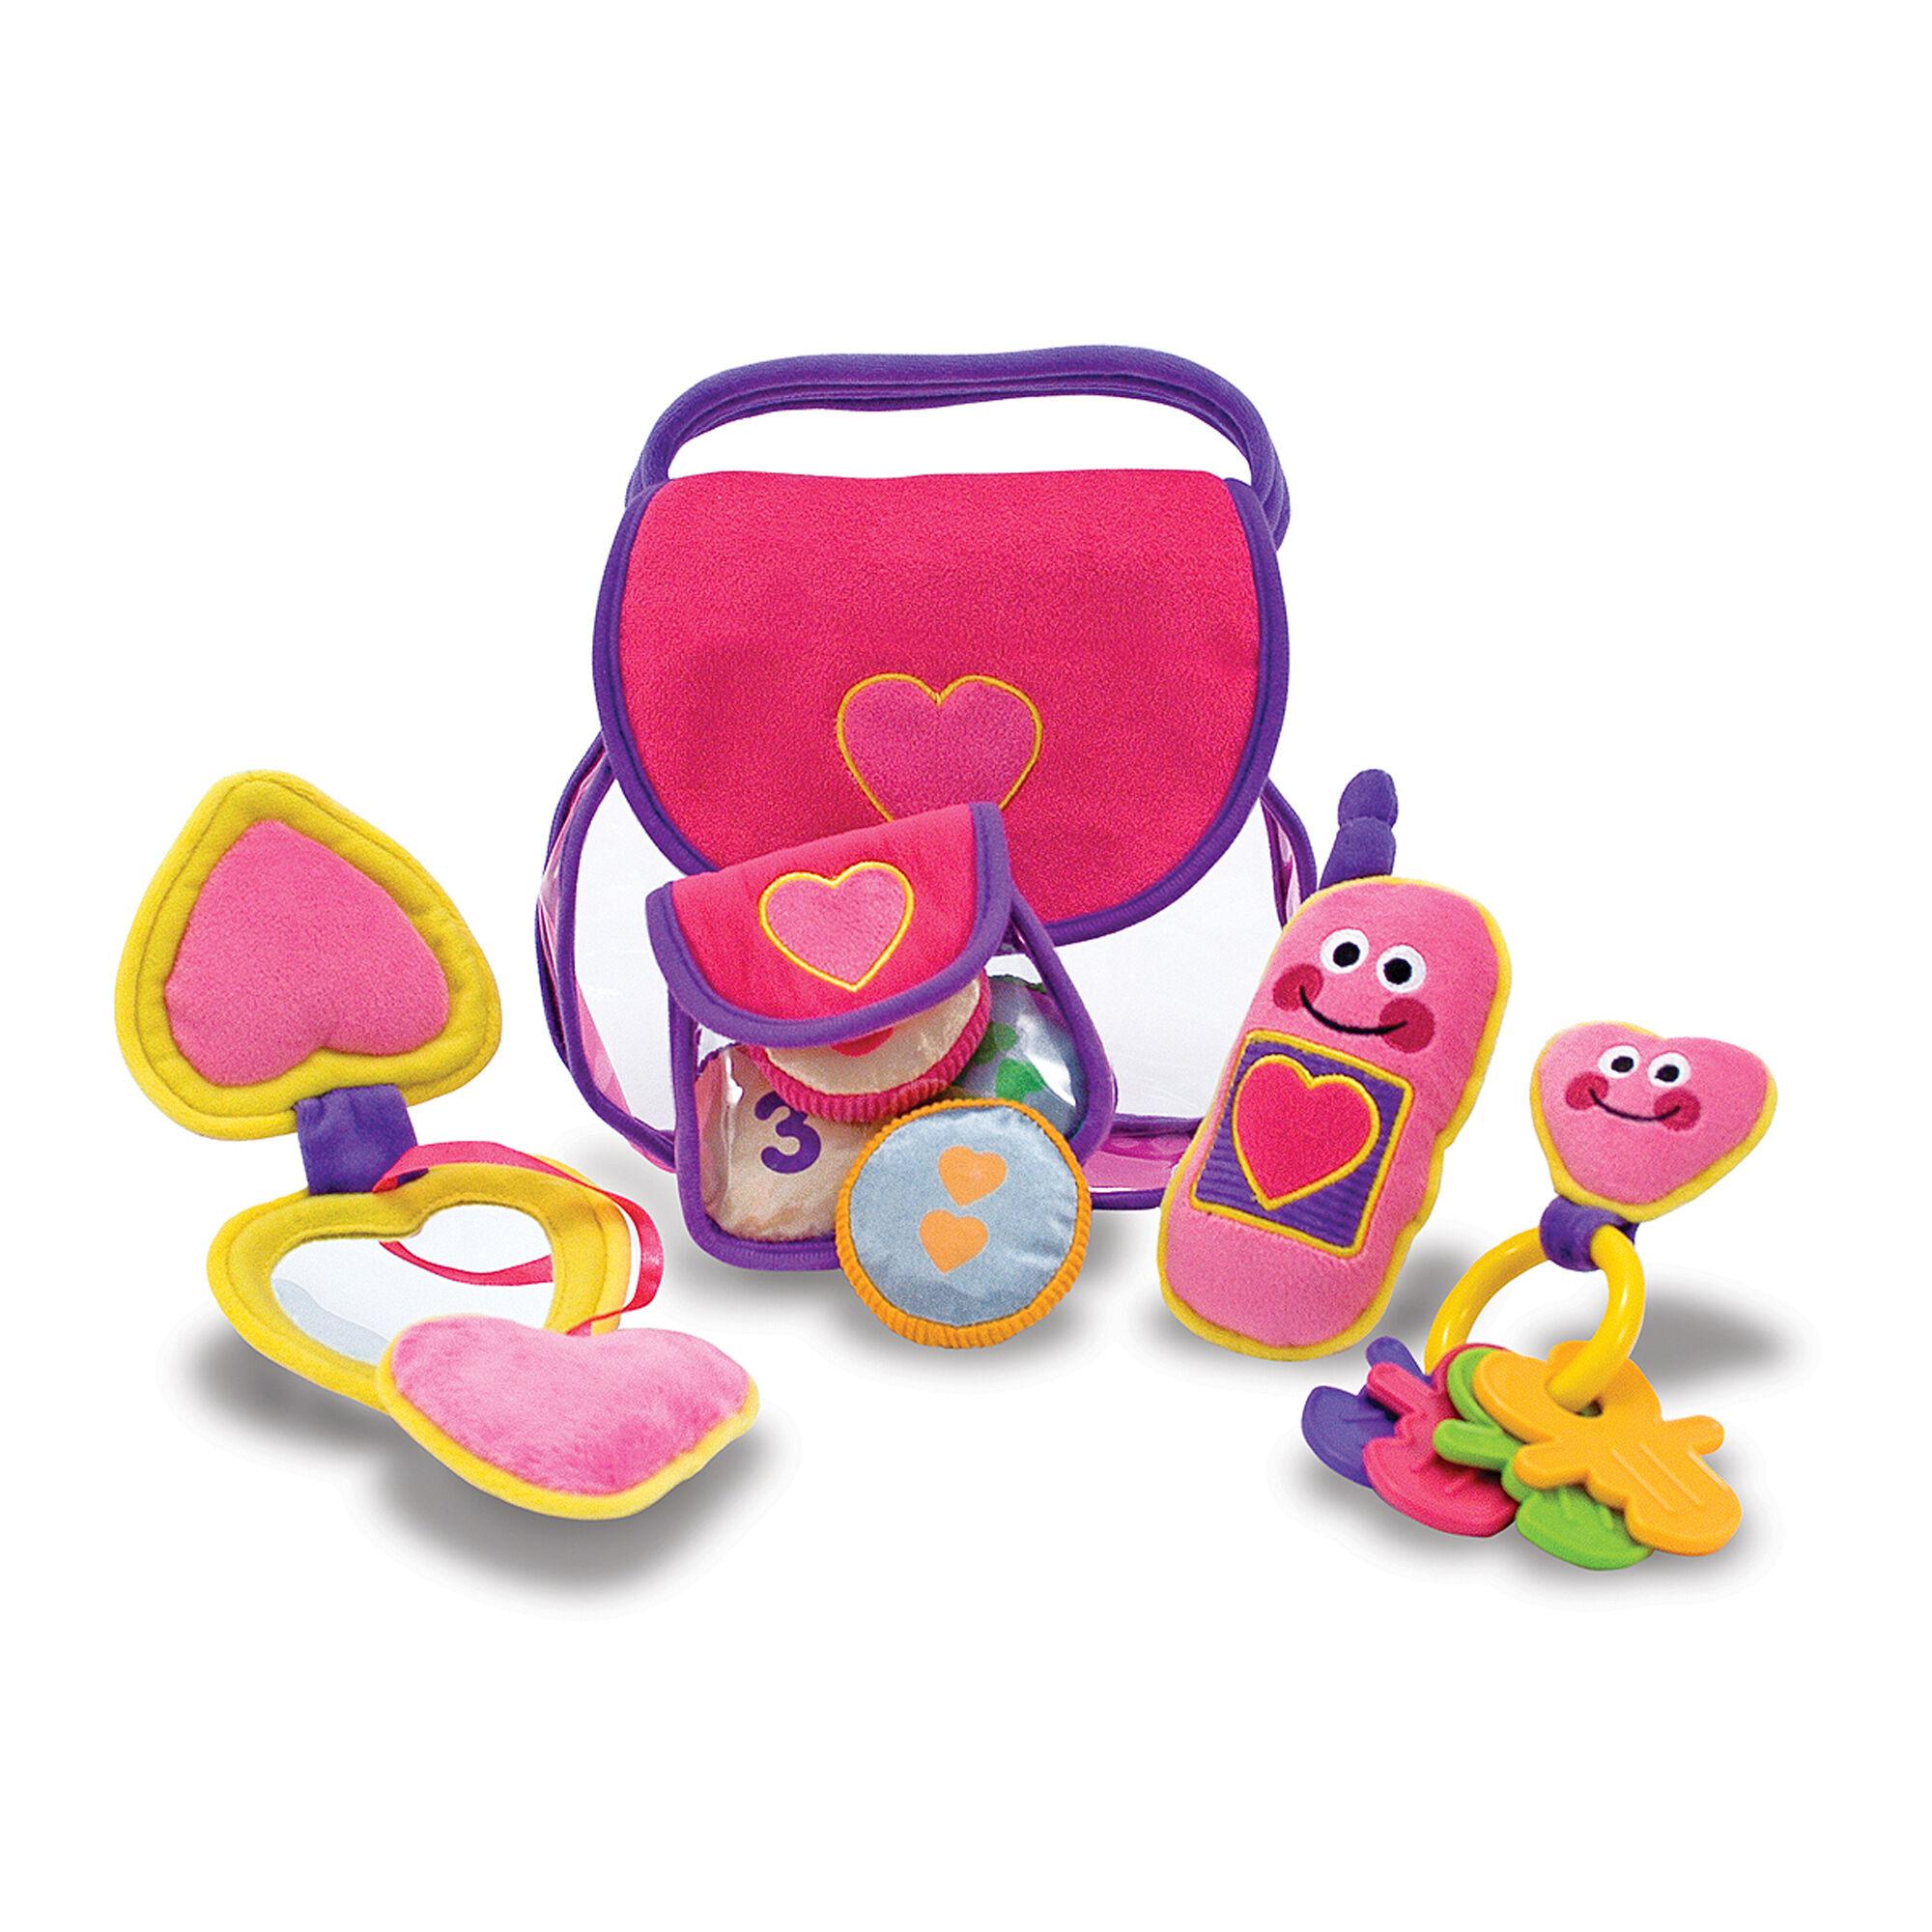 Pretty Purse Fill and Spill Toddler Toy Toys for 12-24 Months   1 year old \u0026 2 olds Melissa